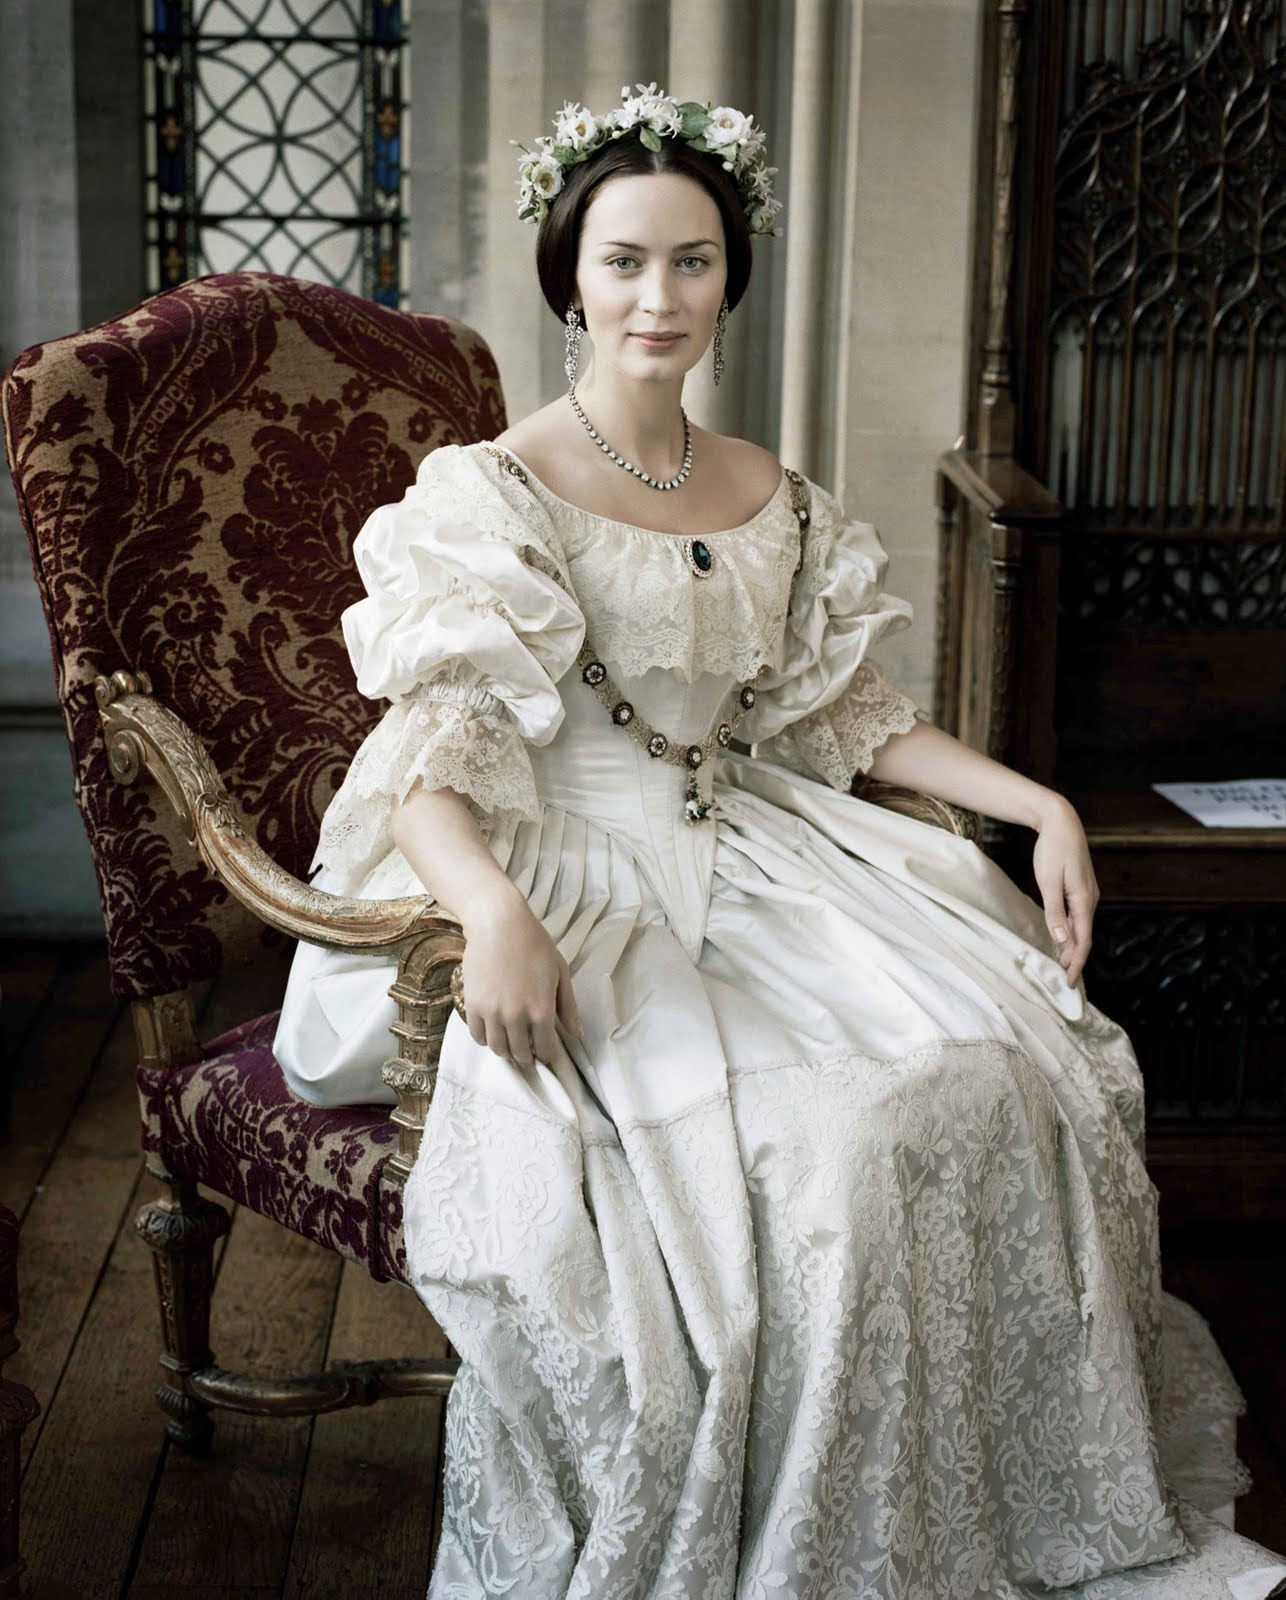 victorian wedding dress Emily Blunt as Queen Victoria in her wedding dress